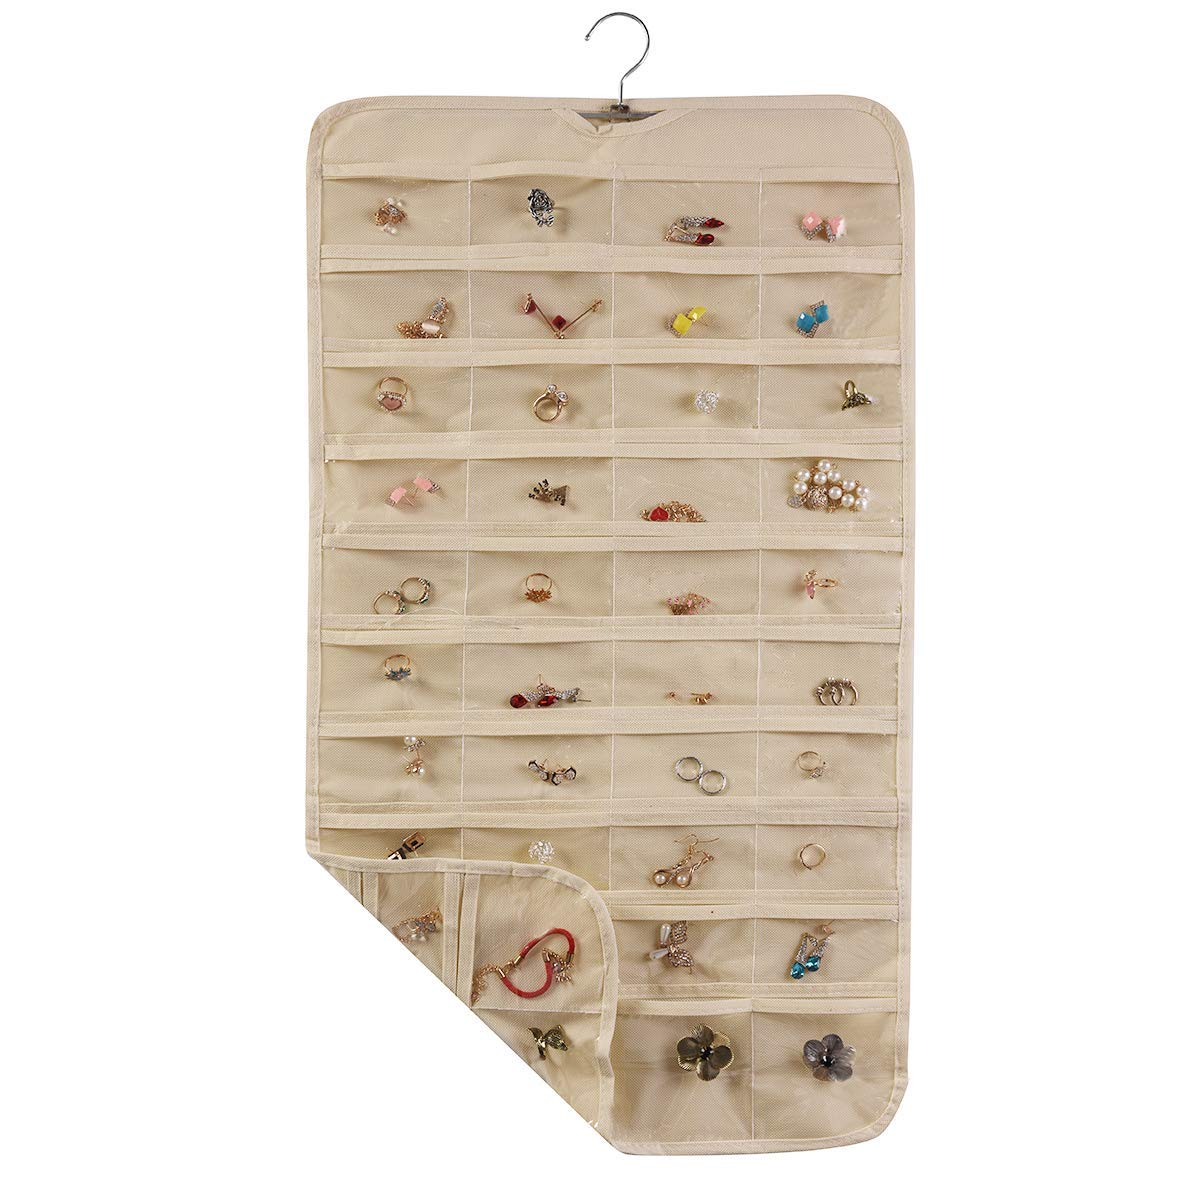 80 Pockets Jewelry Hanging Plastic Storage Bins In Home Custom Packaging Clothing Box Foldable Fabric Storage Box